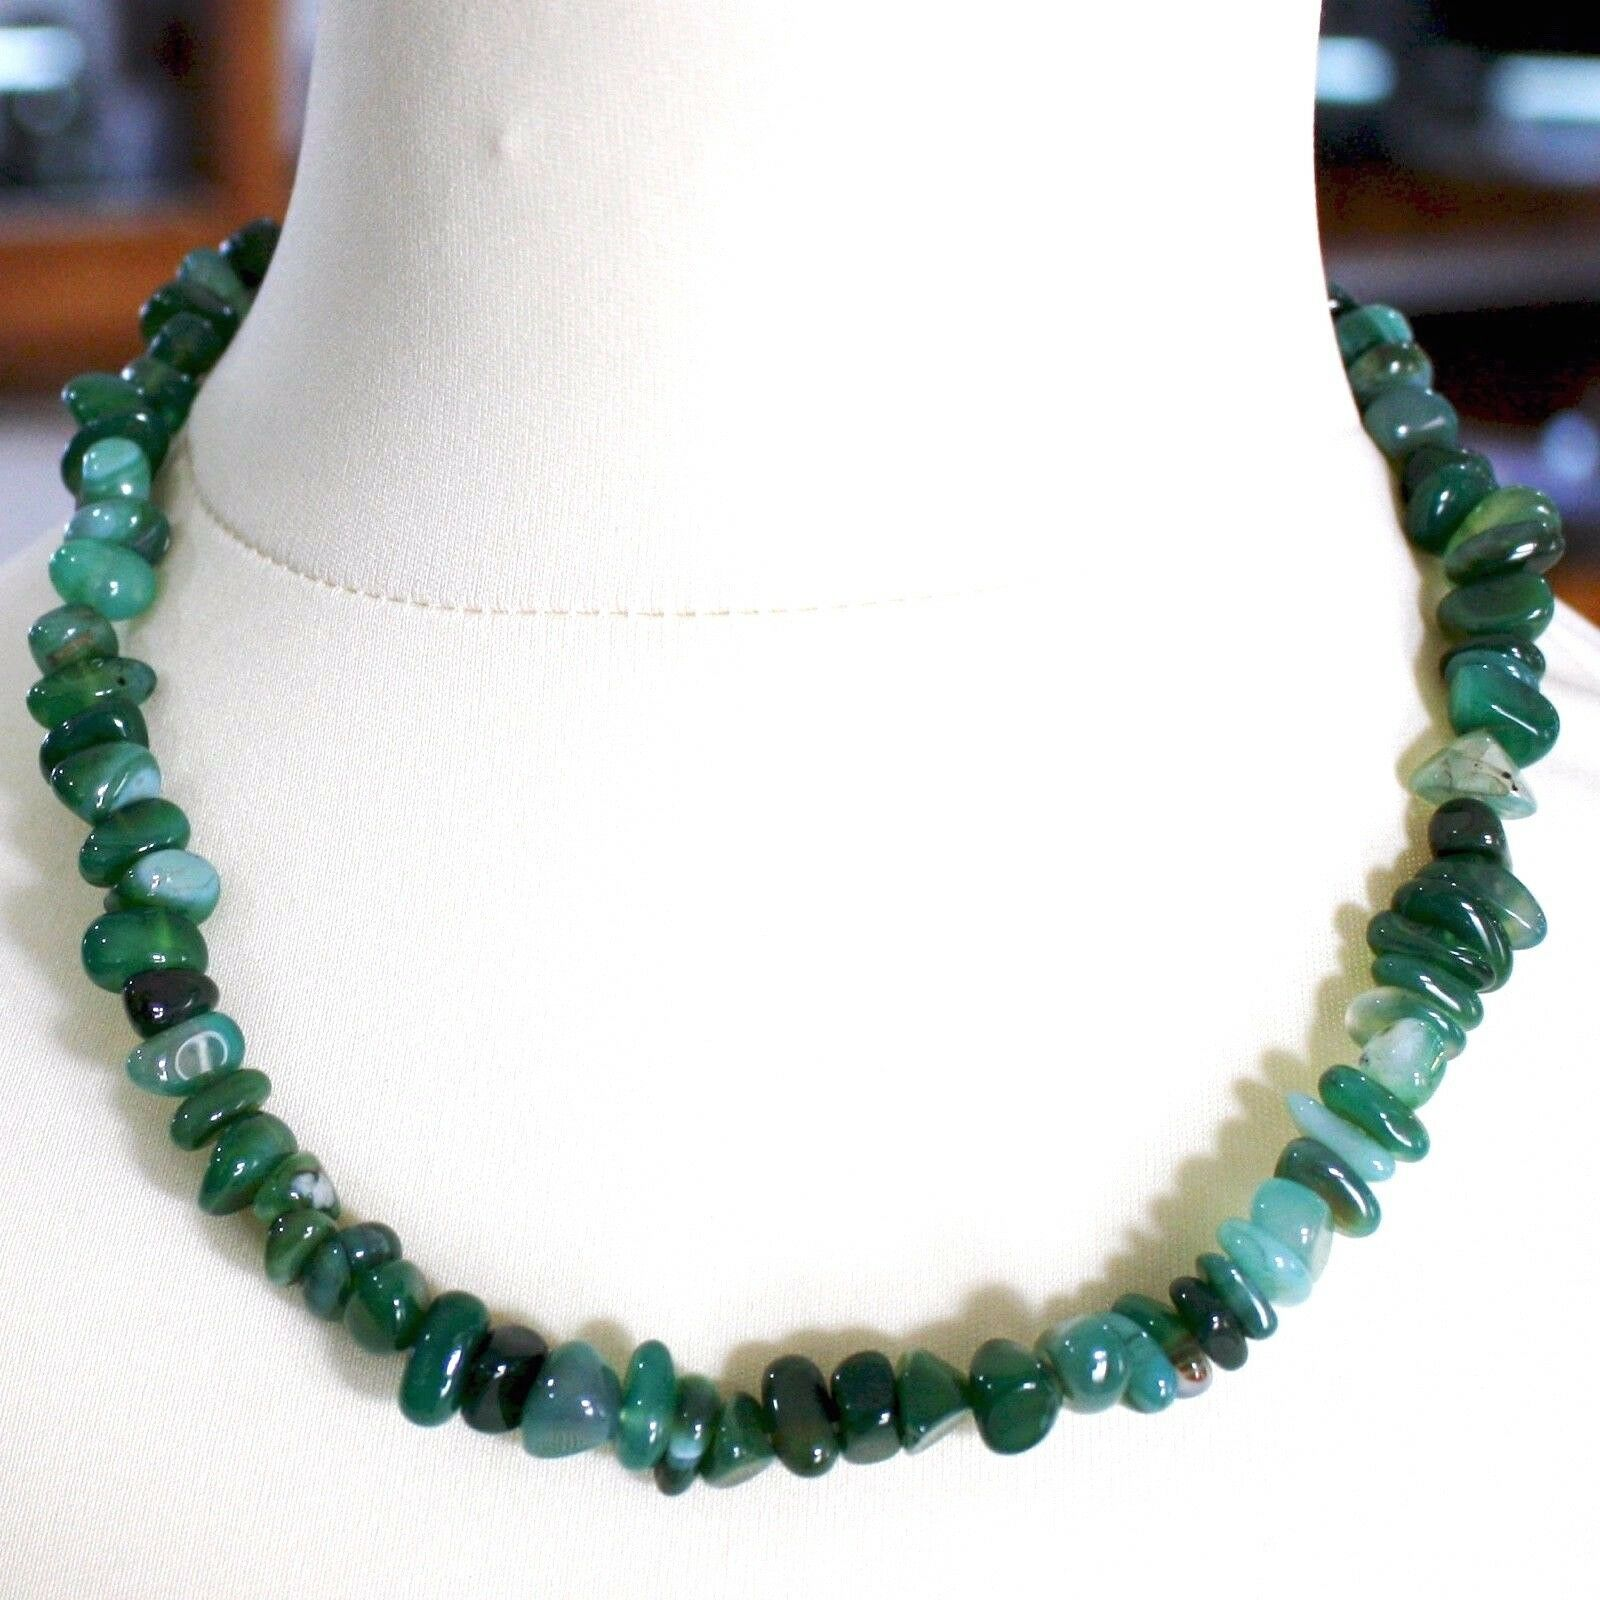 925 STERLING SILVER NECKLACE WITH AGATE GREEN STRIATA, 50 0,5 75 CM LENGTH